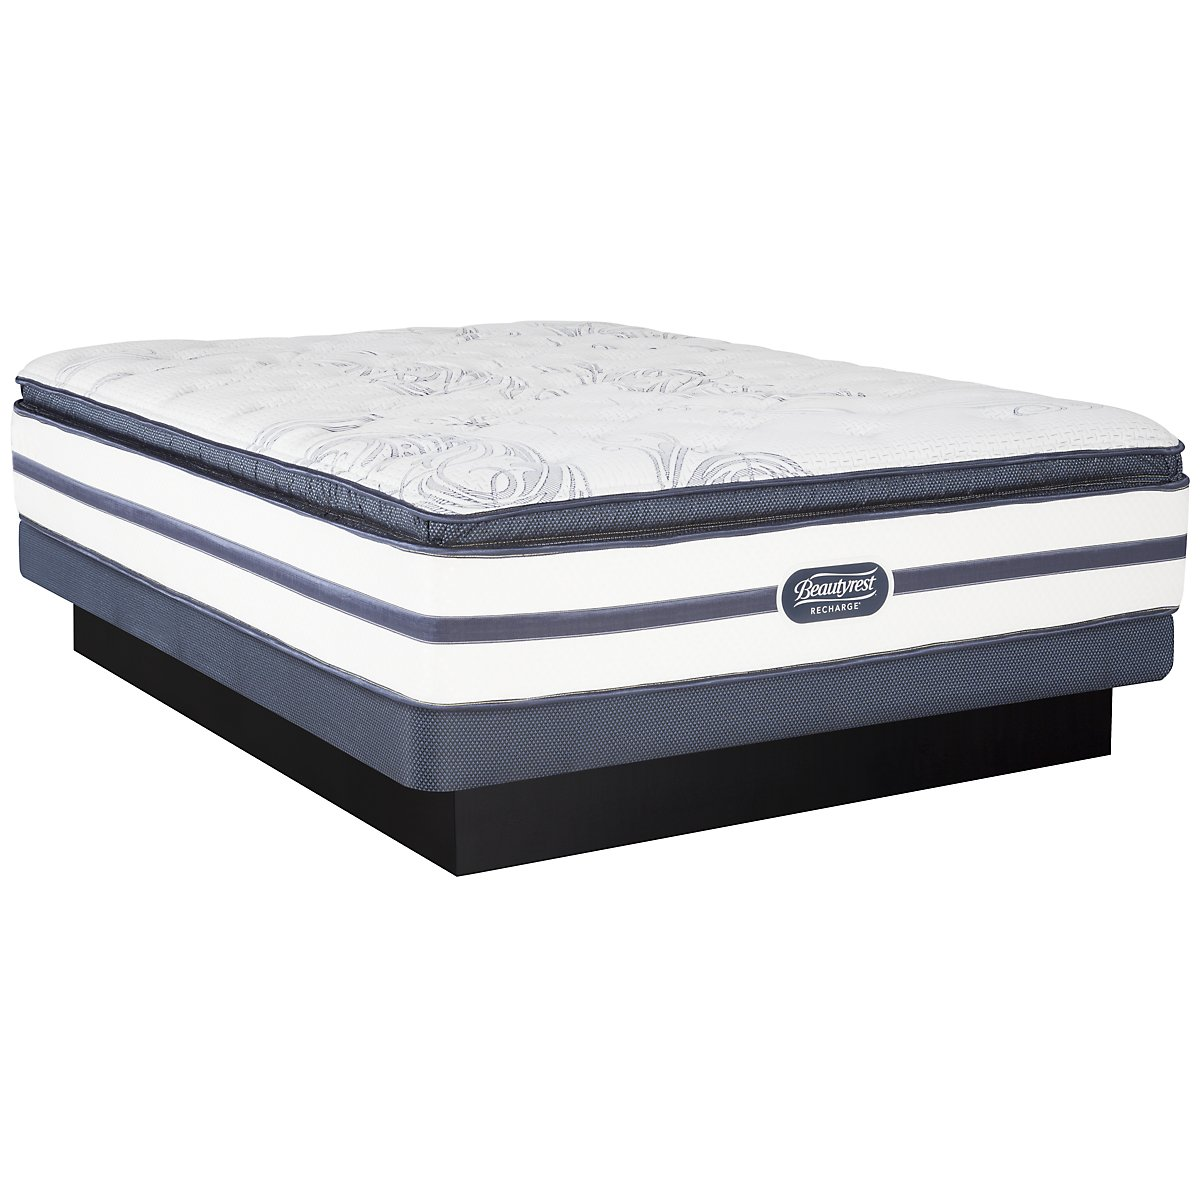 Beautyrest Recharge Audrina Luxury Firm Innerspring Pillow Top Low-Profile Mattress Set